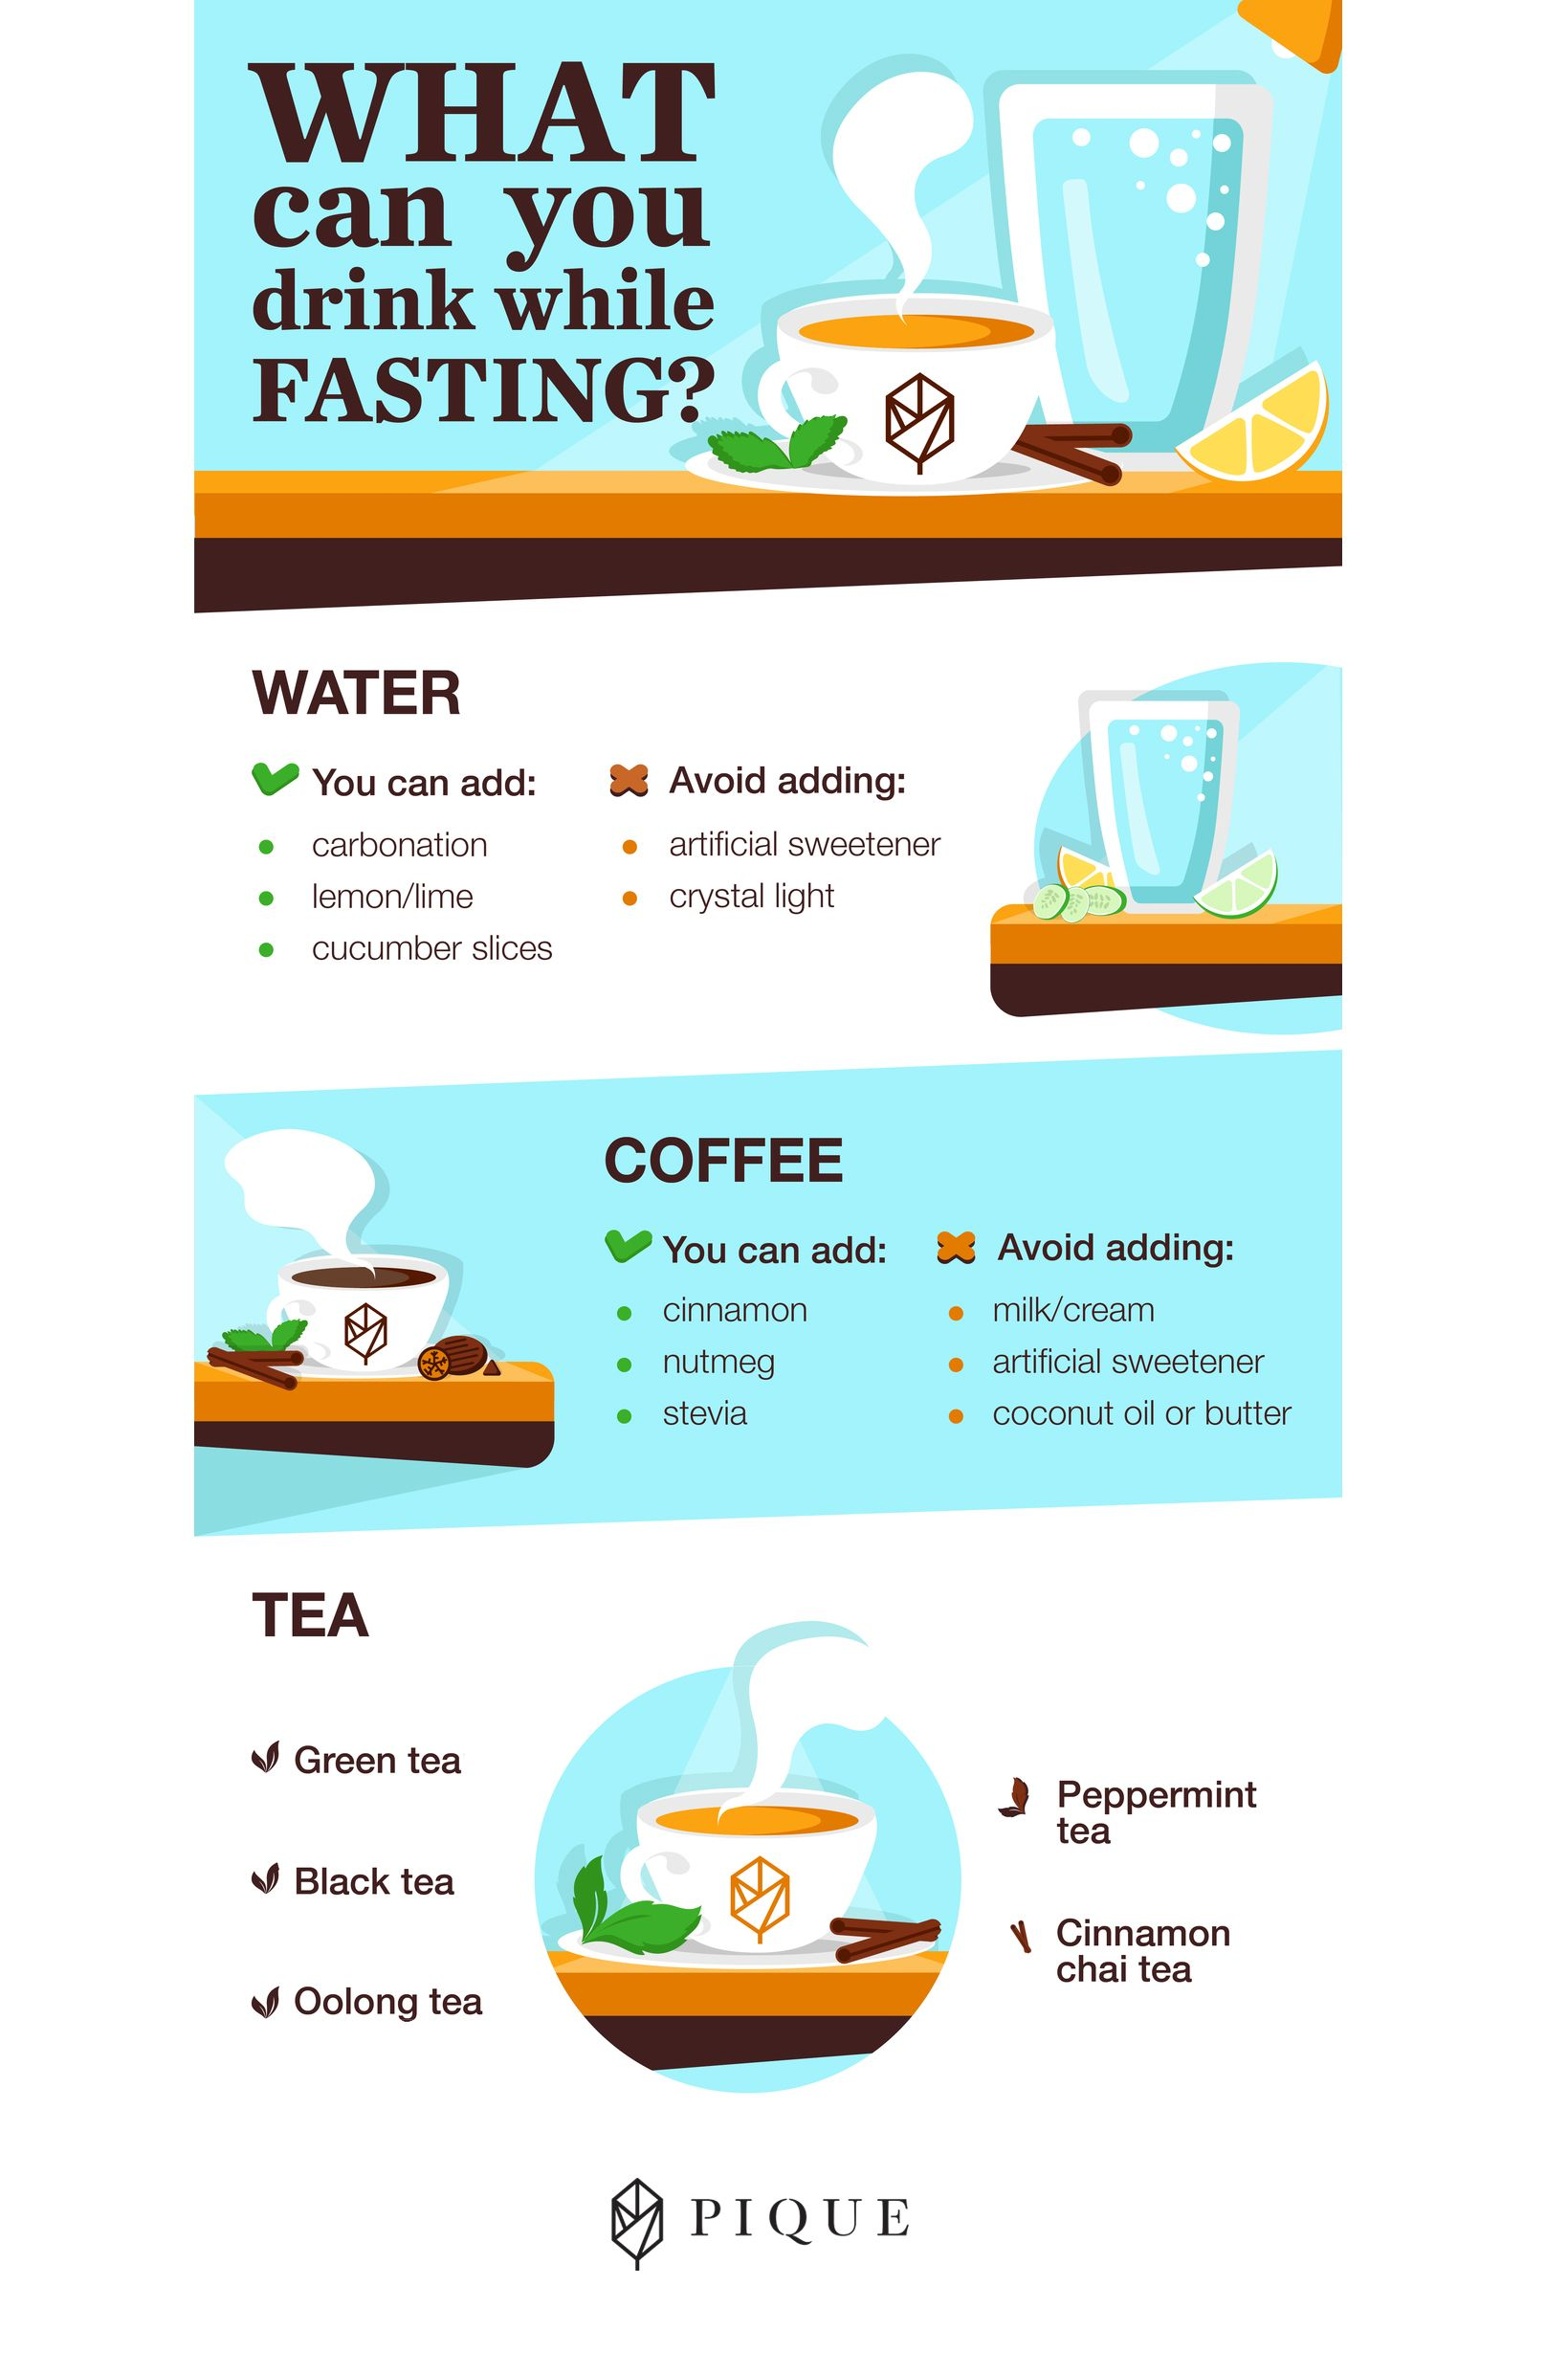 diet green tea while fasting